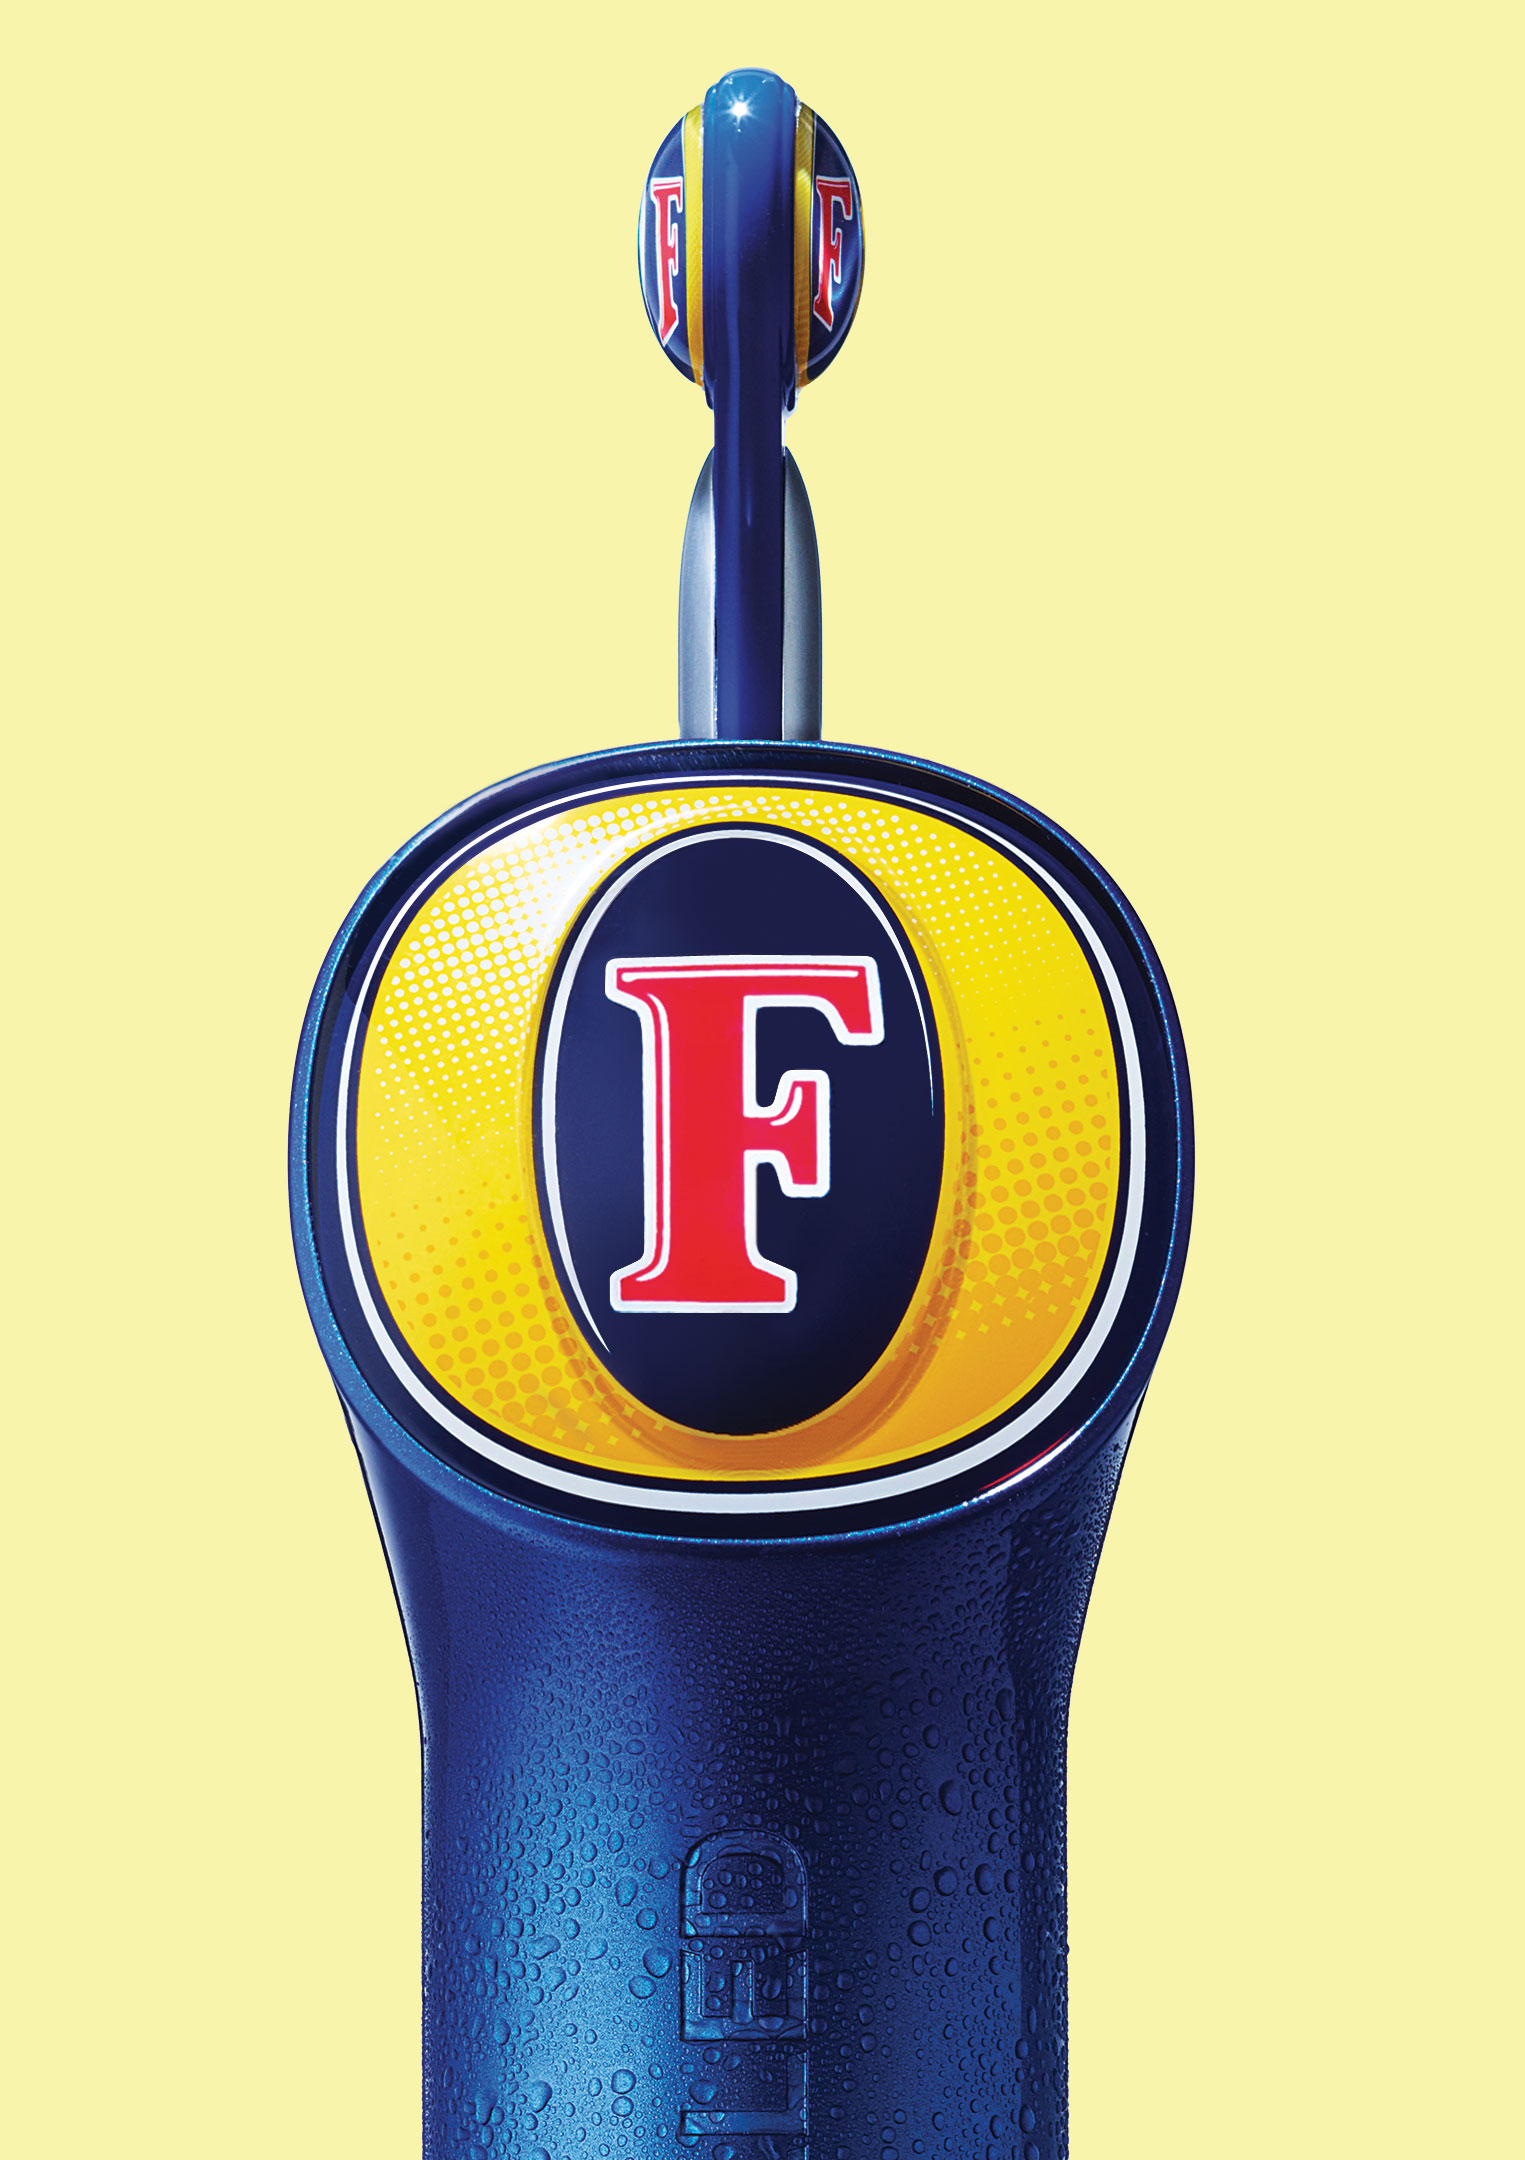 Foster's Beer Pump Design